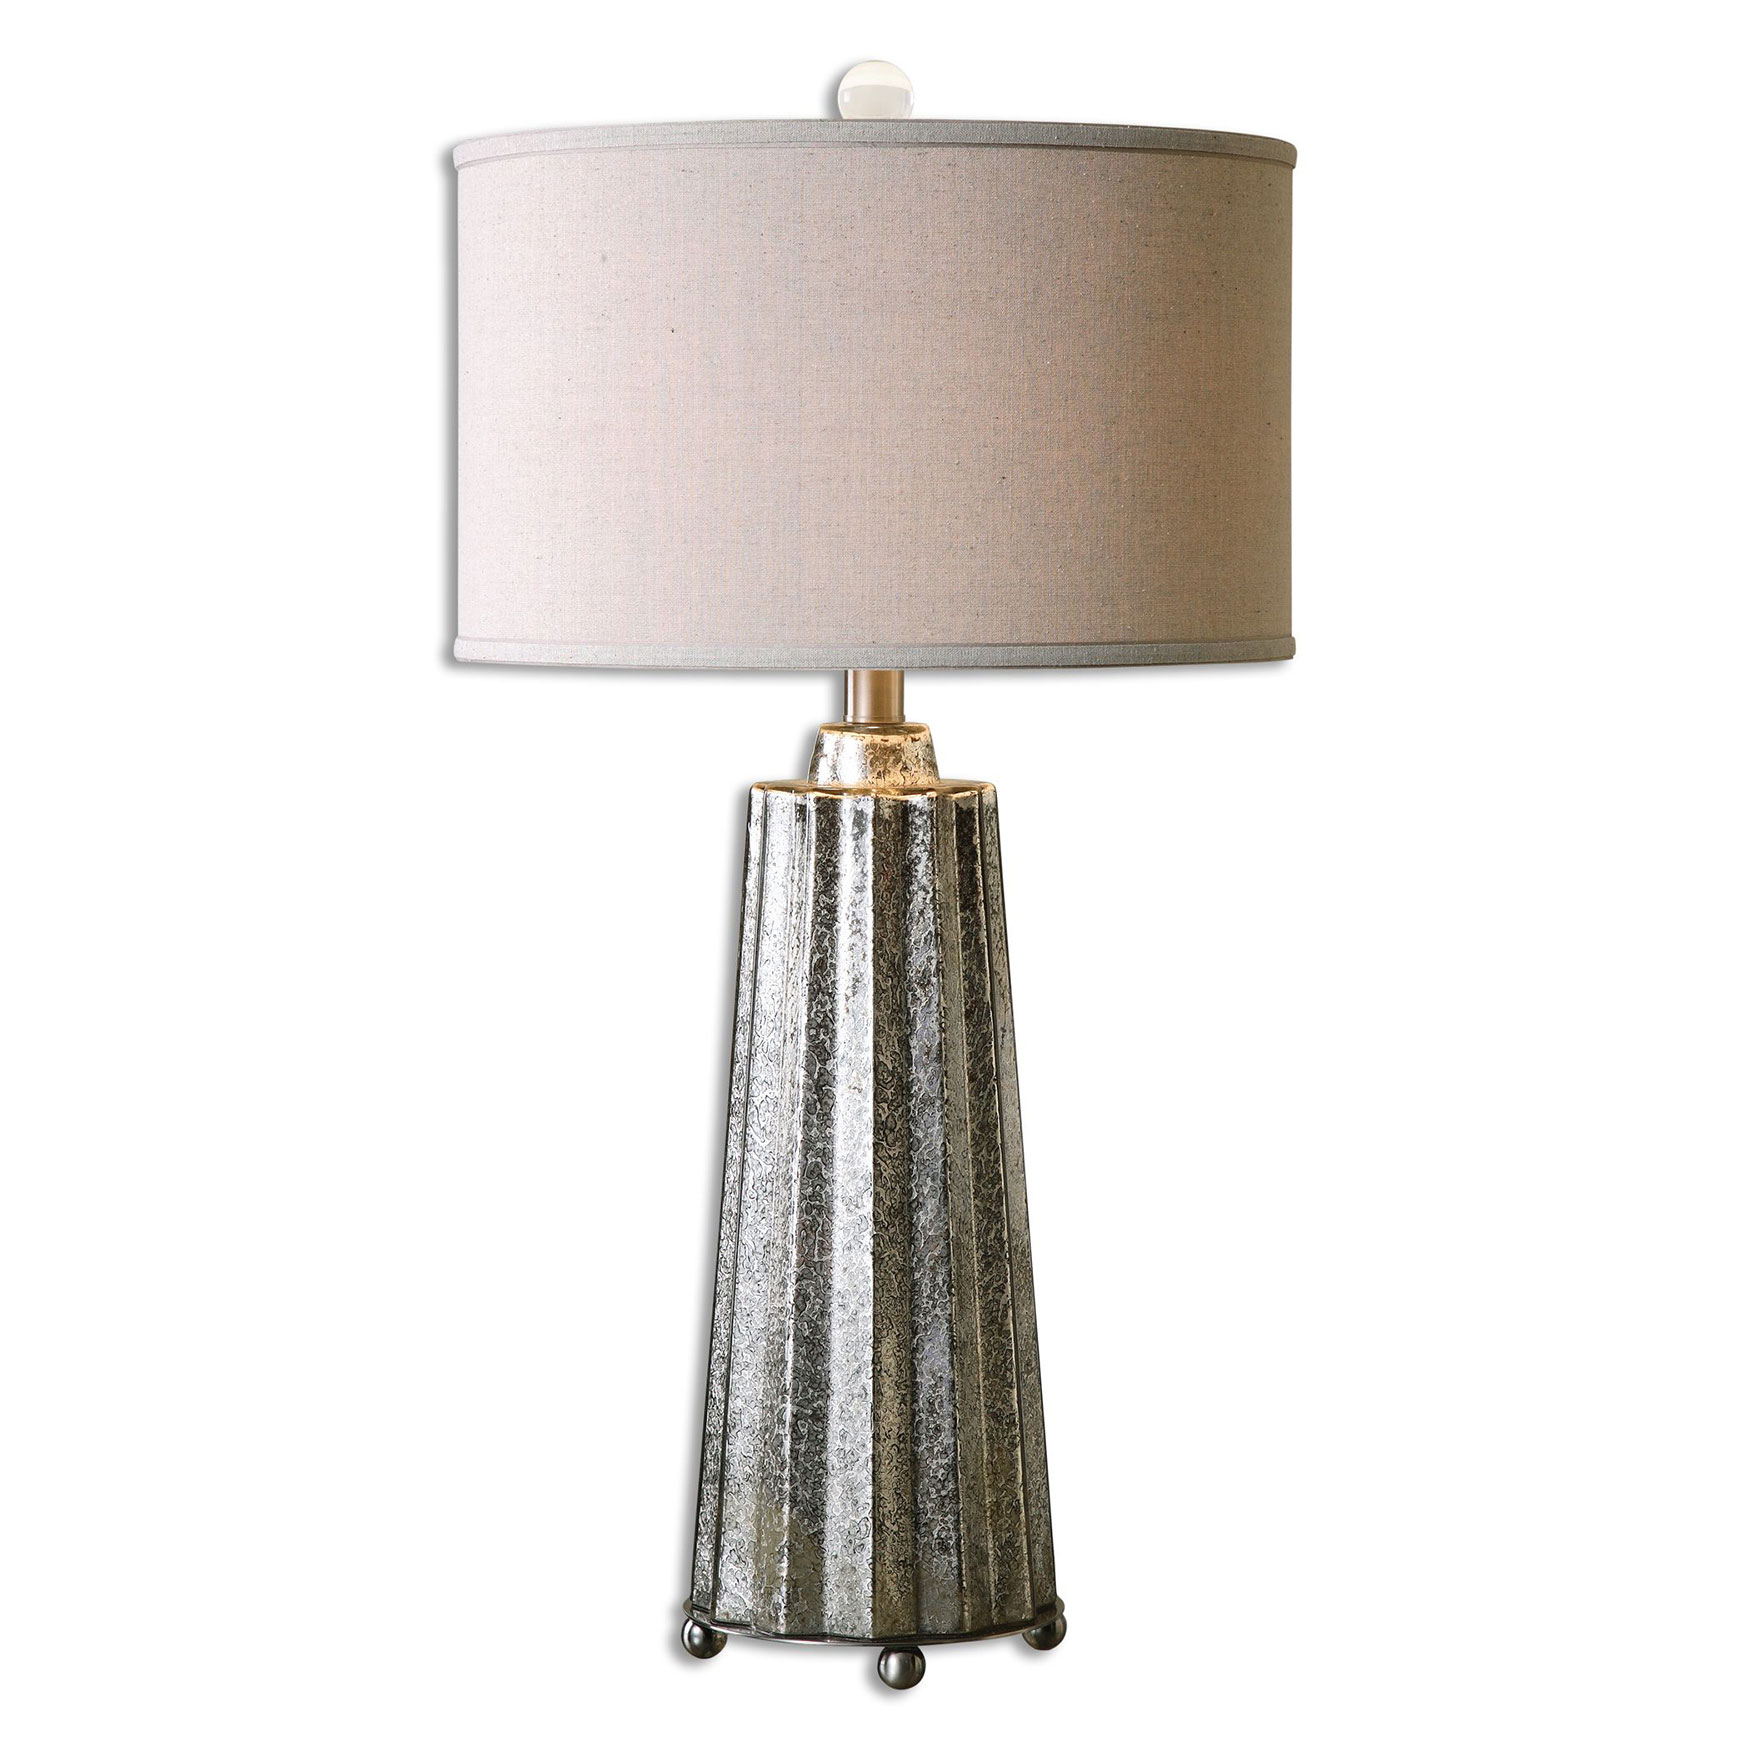 Sullivan Mercury Glass Table Lamp, NICKEL